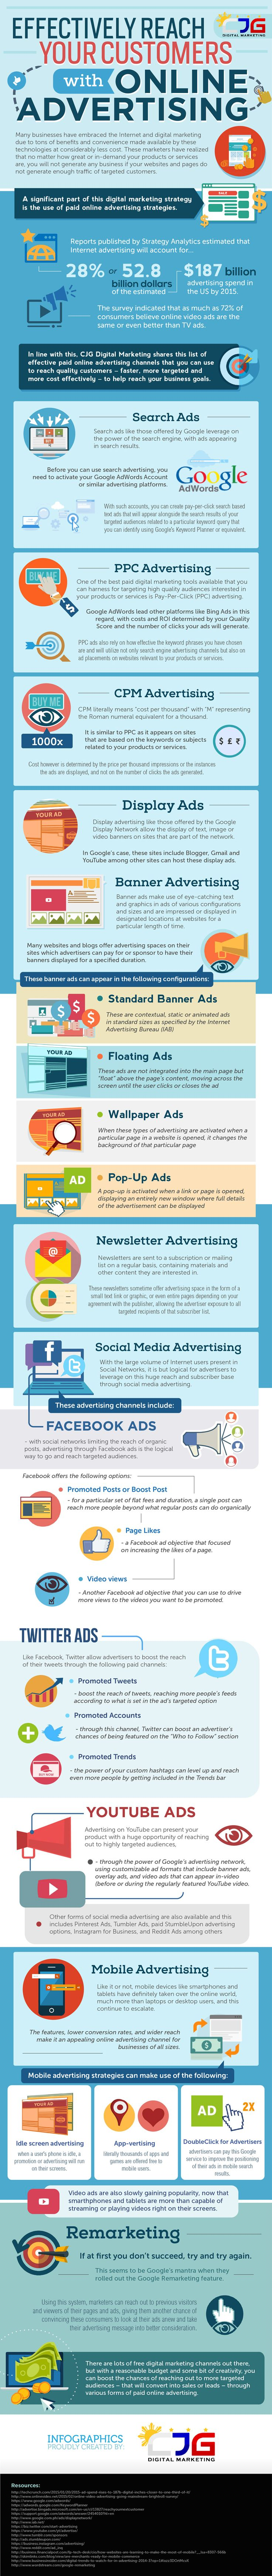 Effectively Reach Your Customers with Online Advertising [Infographic] | via Mar... de819c822432e12669f708ad2393c26c